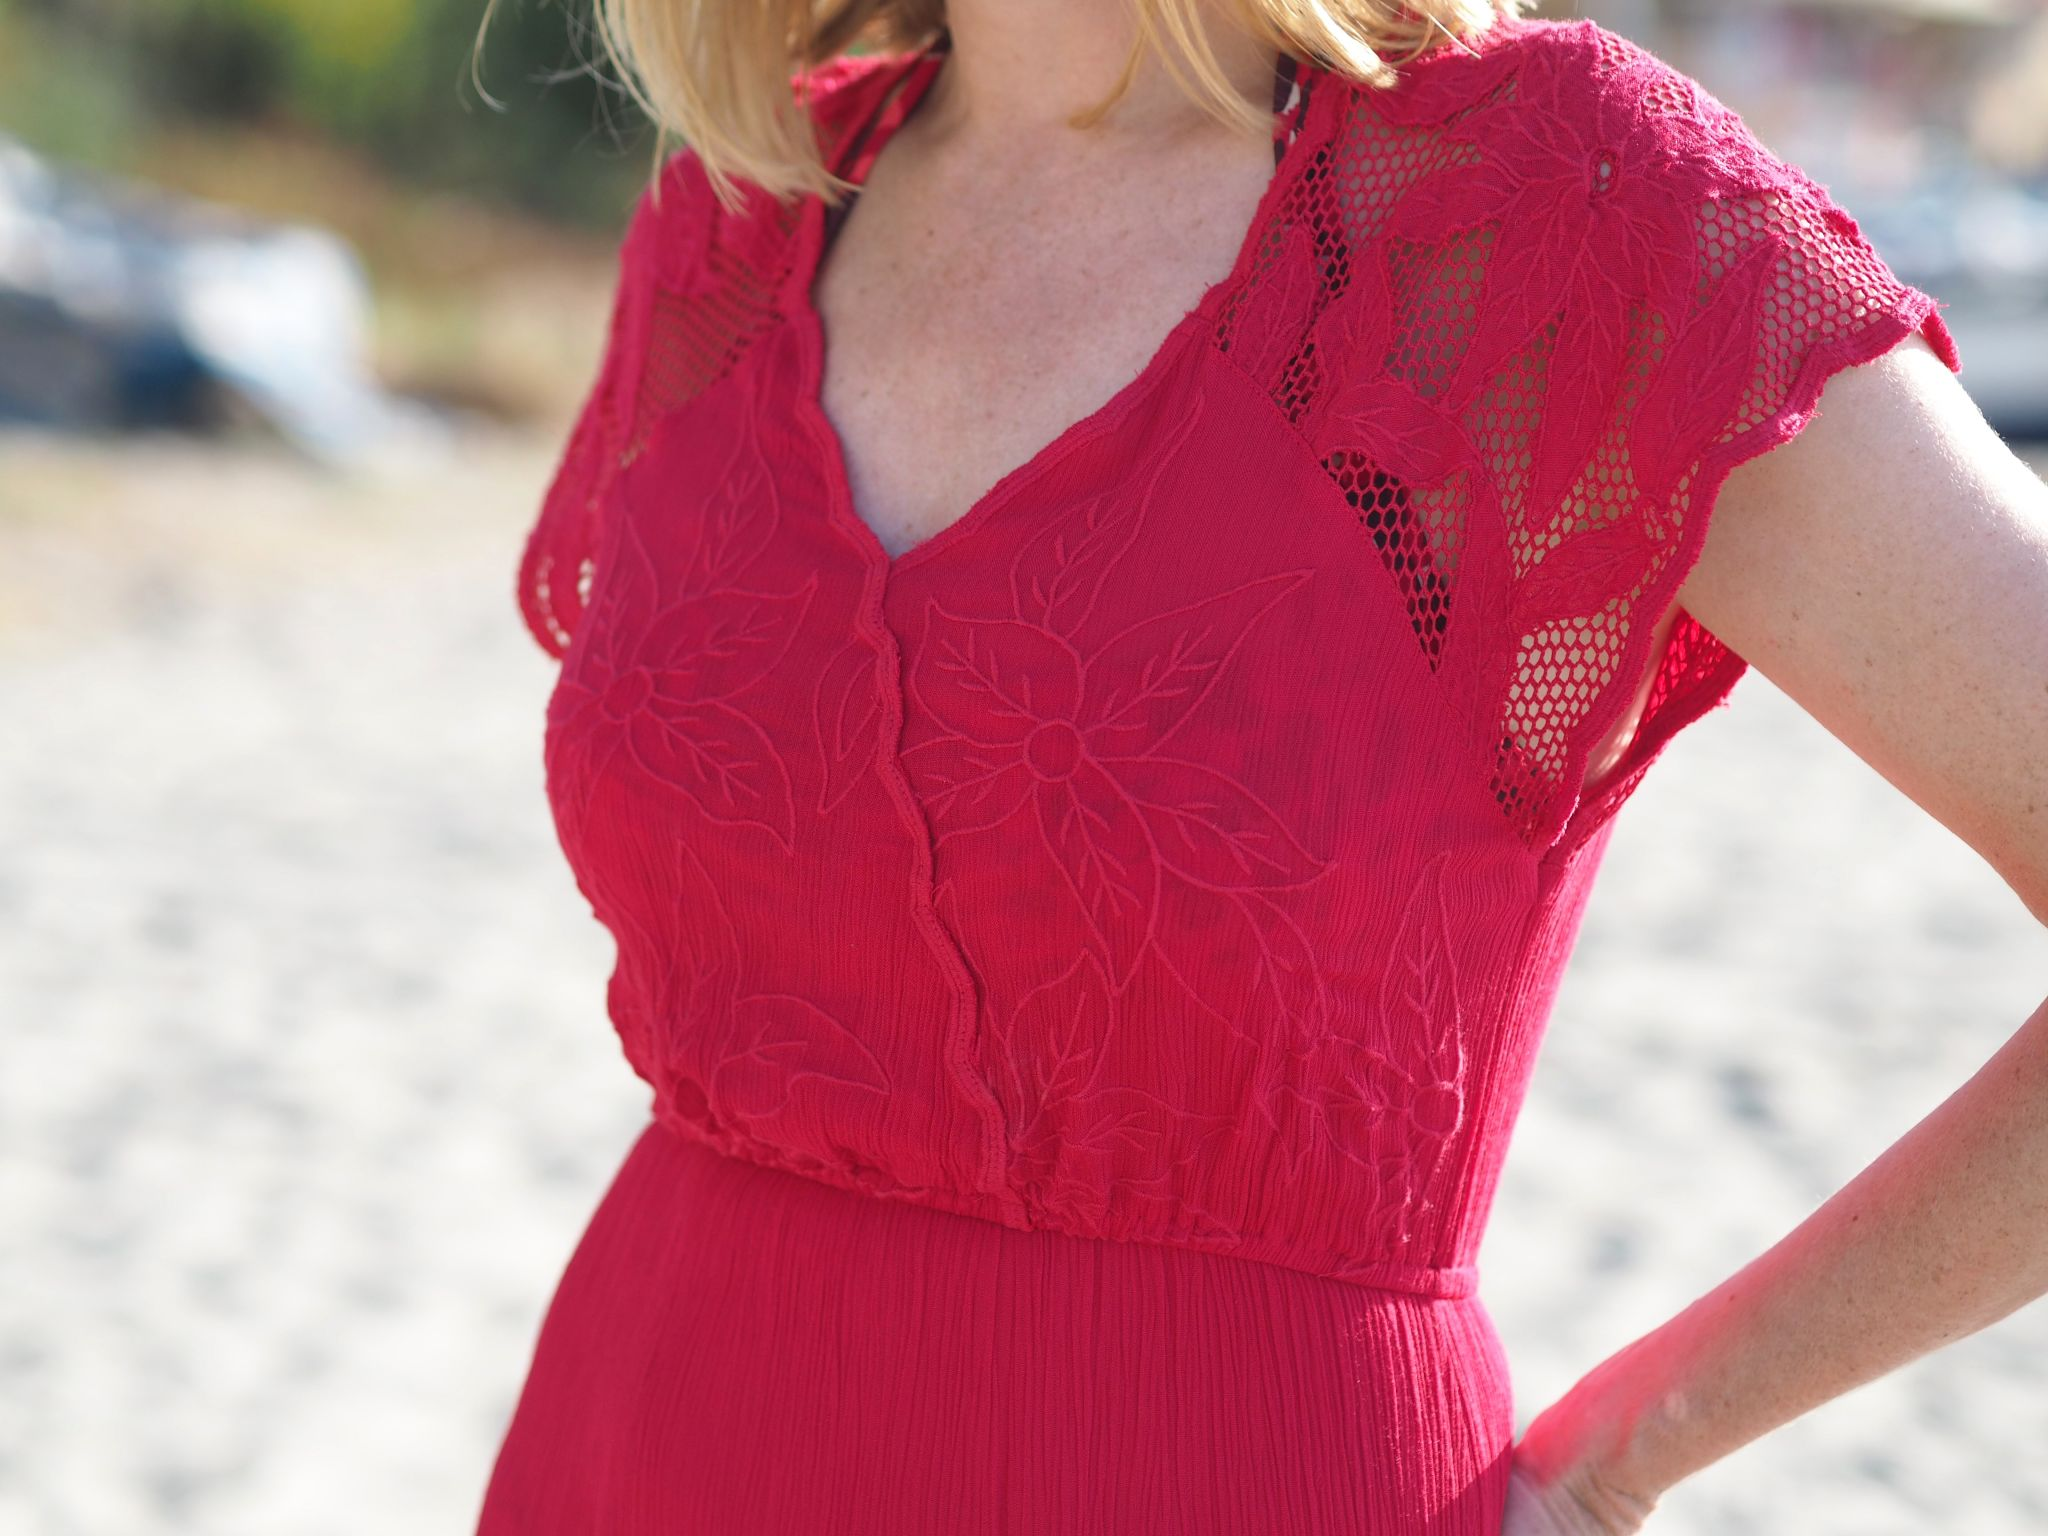 what-lizzy-loves-over40-blogger-red-long-beach=dress-cover-up-maxi-nerja-spain